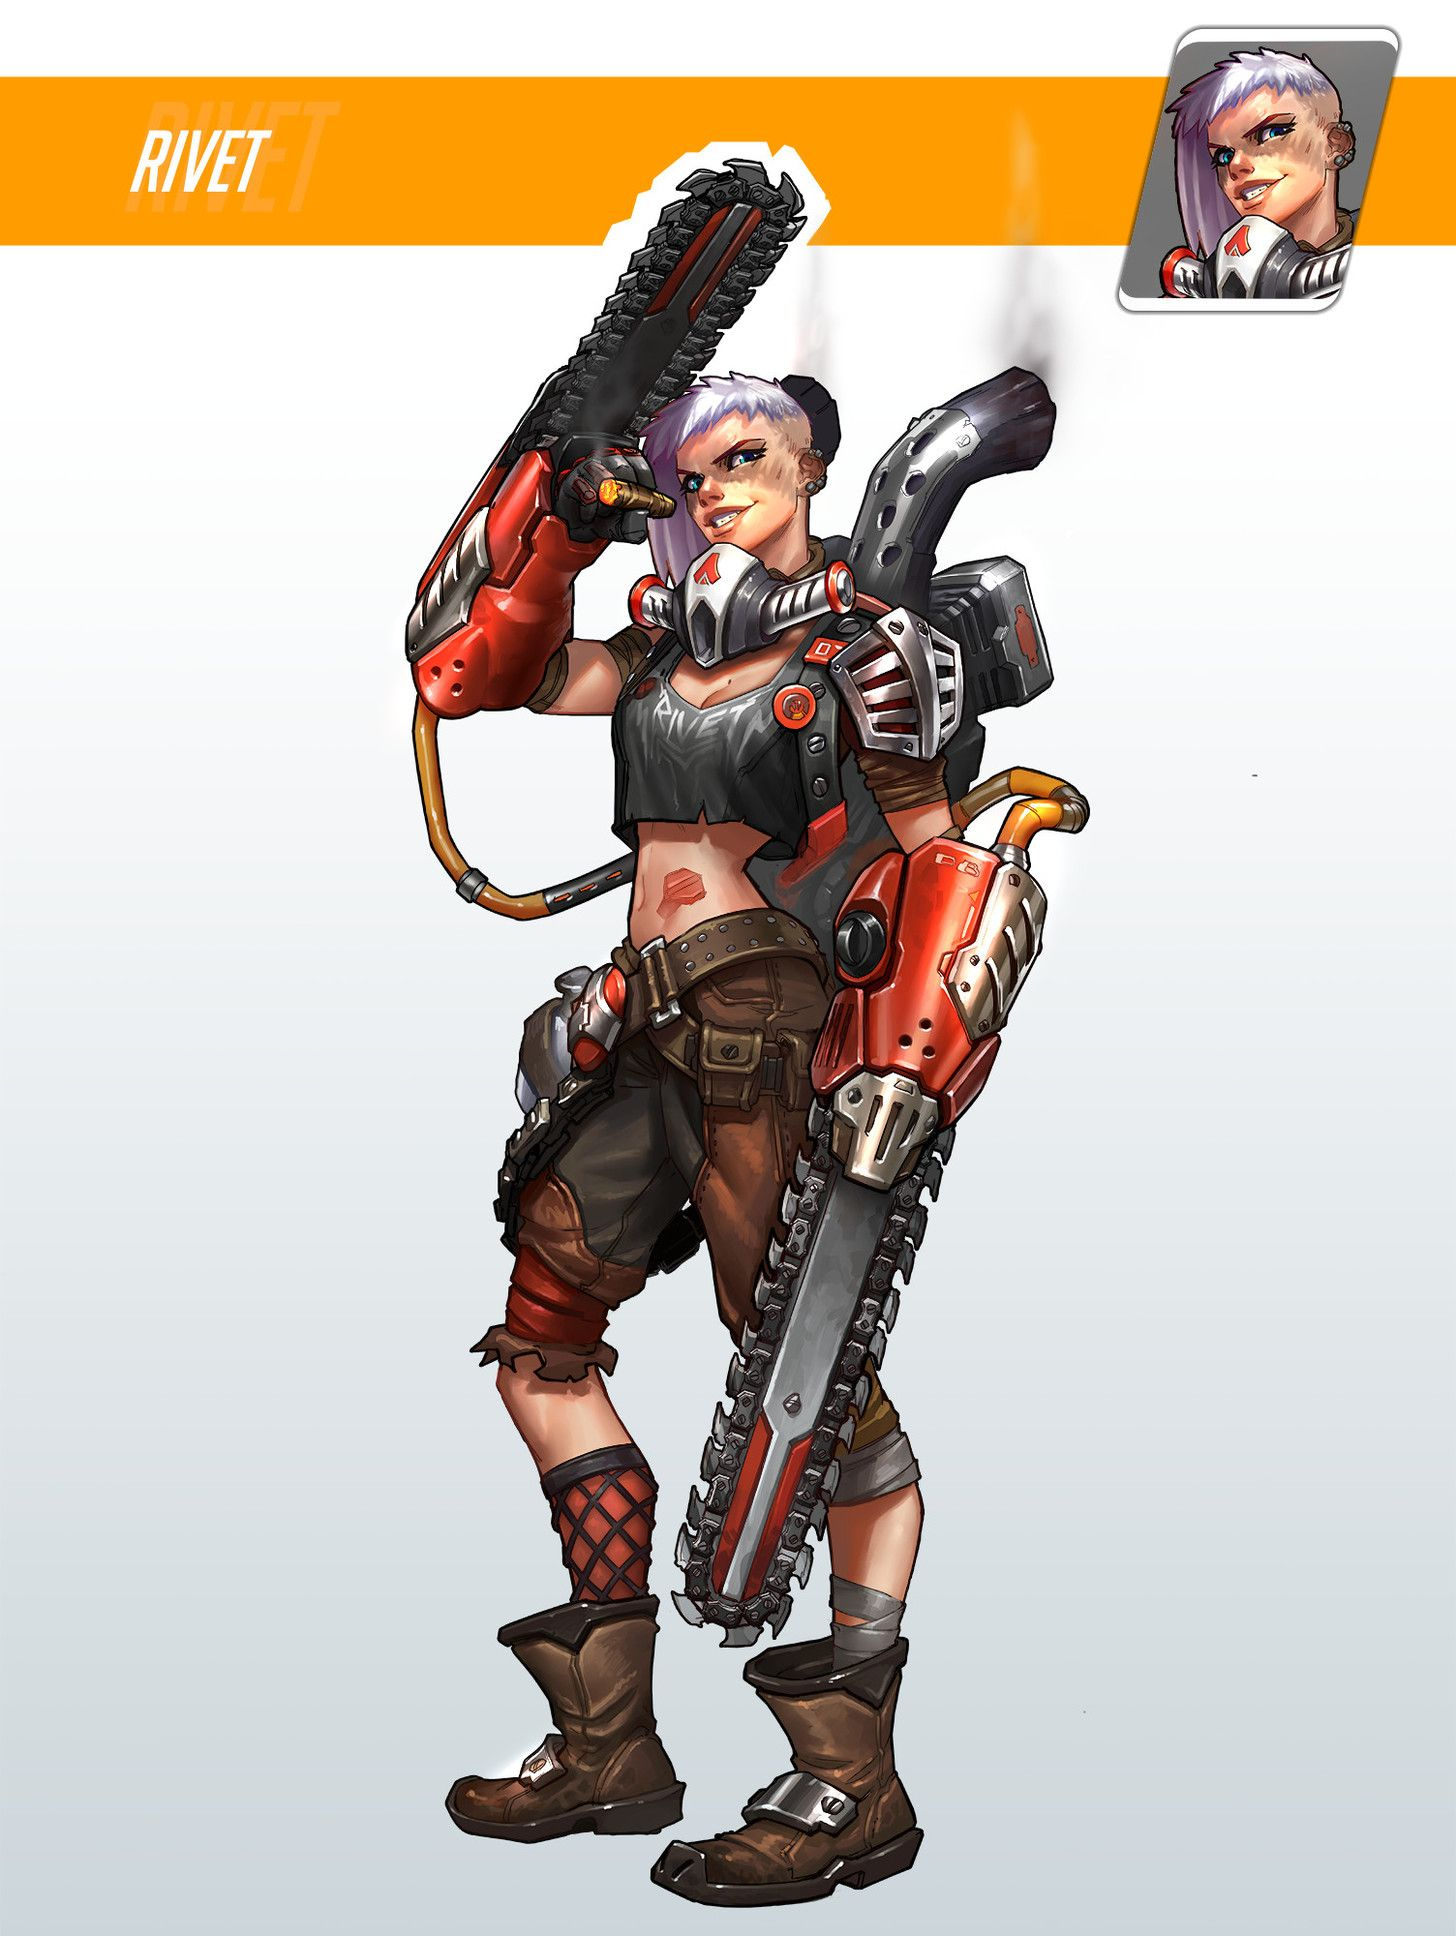 overwatch fanmade character rivet by rafael zanchetin album on